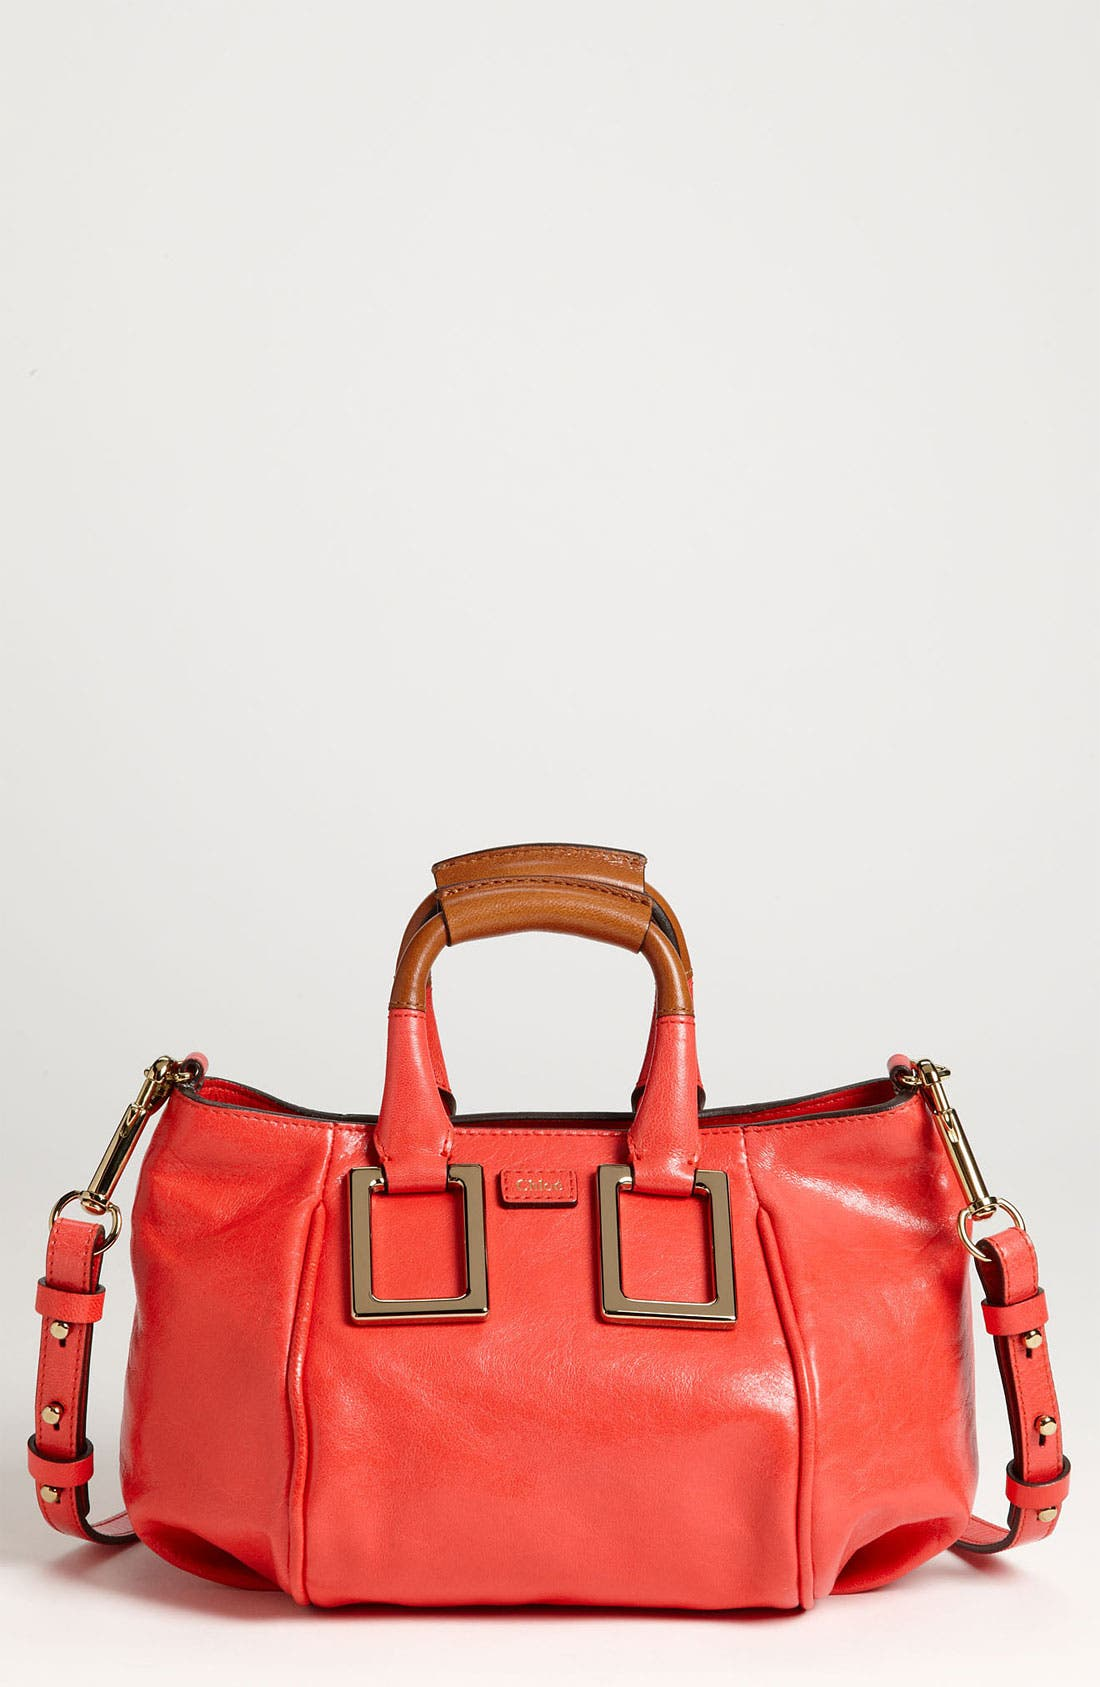 Alternate Image 1 Selected - Chloé 'Ethel - Small' Leather Satchel